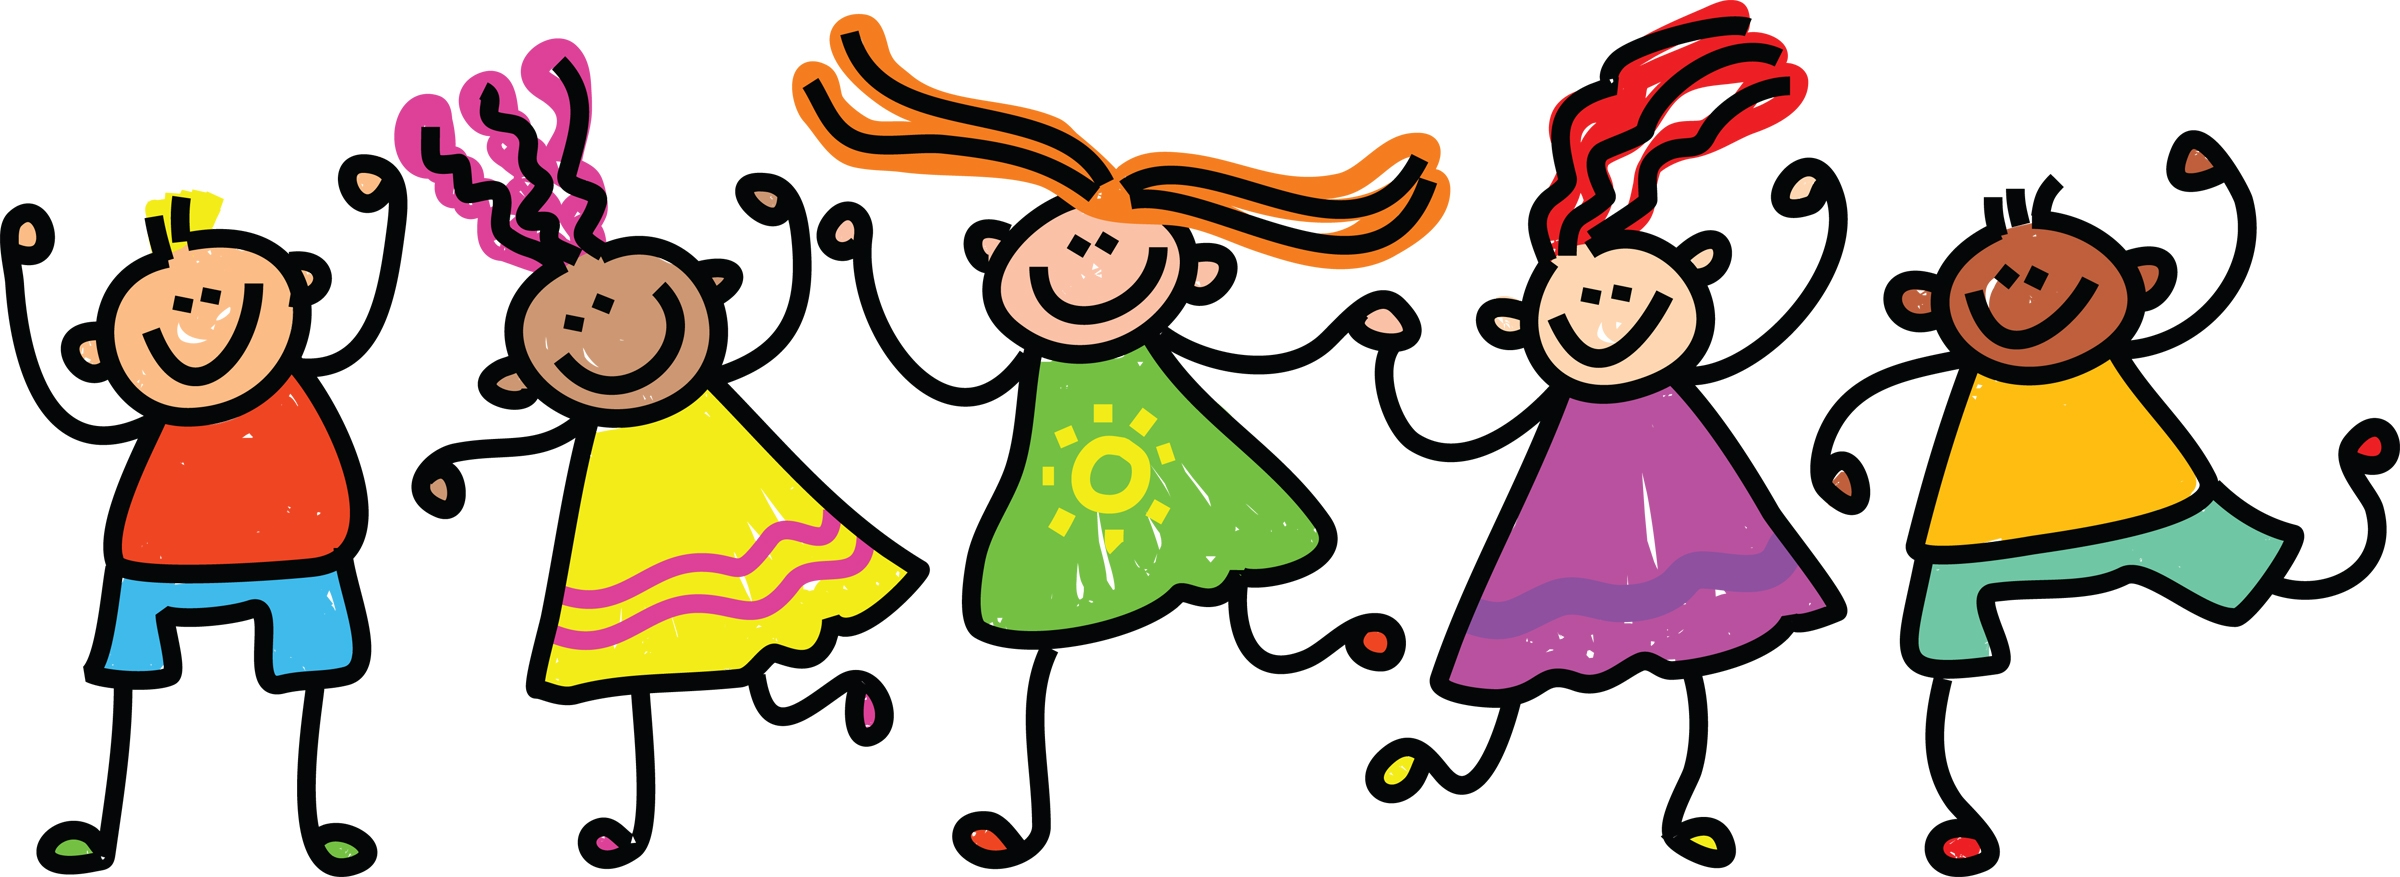 2400x877 Kids Dance Clipart